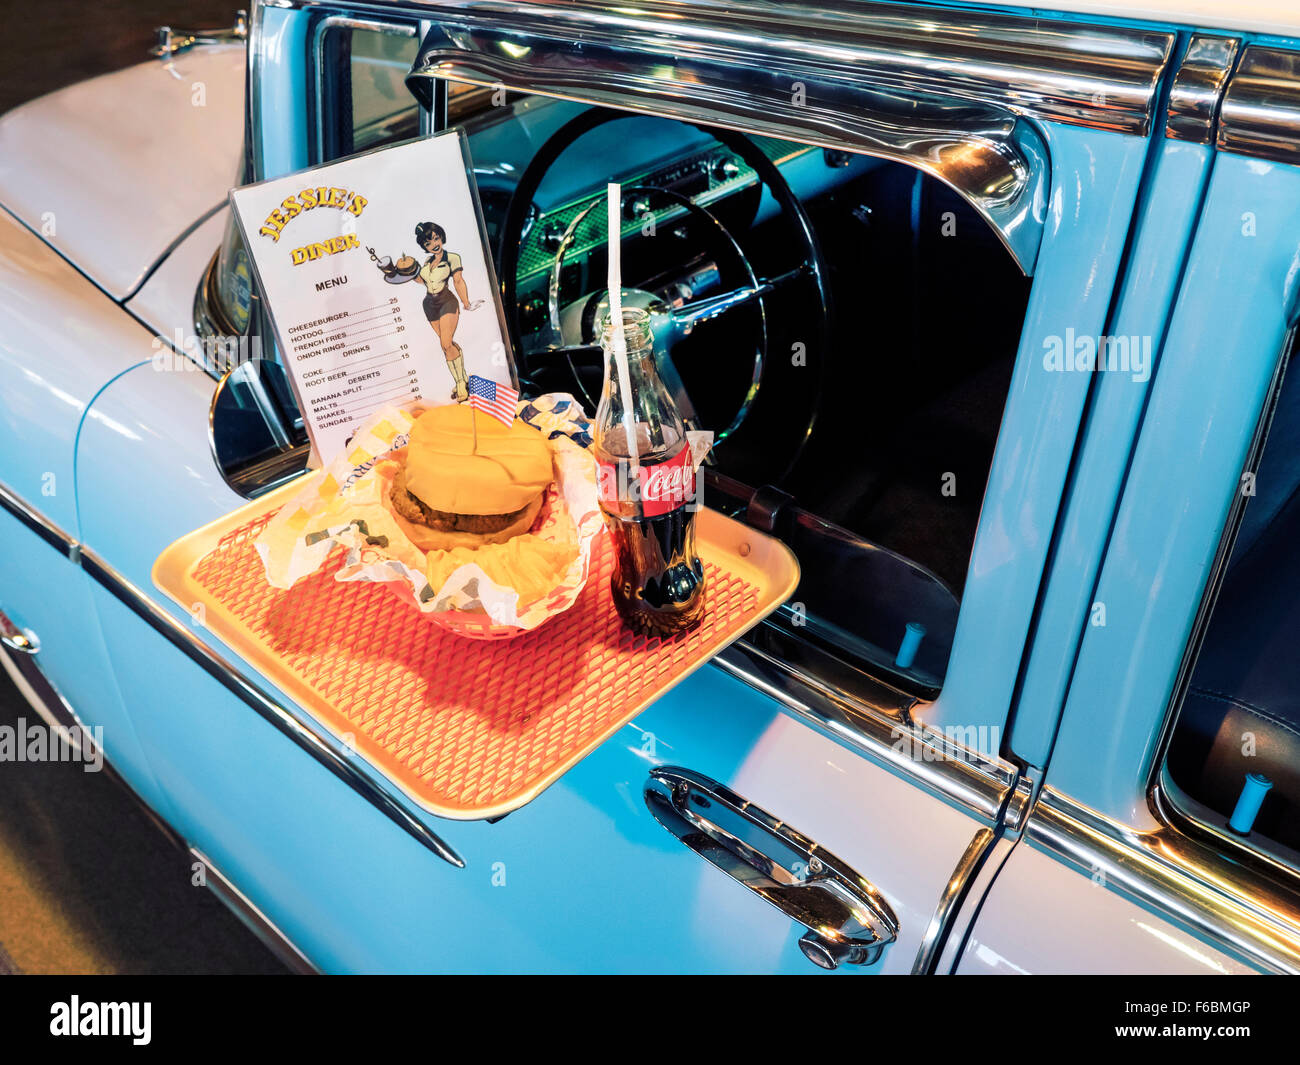 1950's Chevrolet Bel-Air with tray of food clipped on the